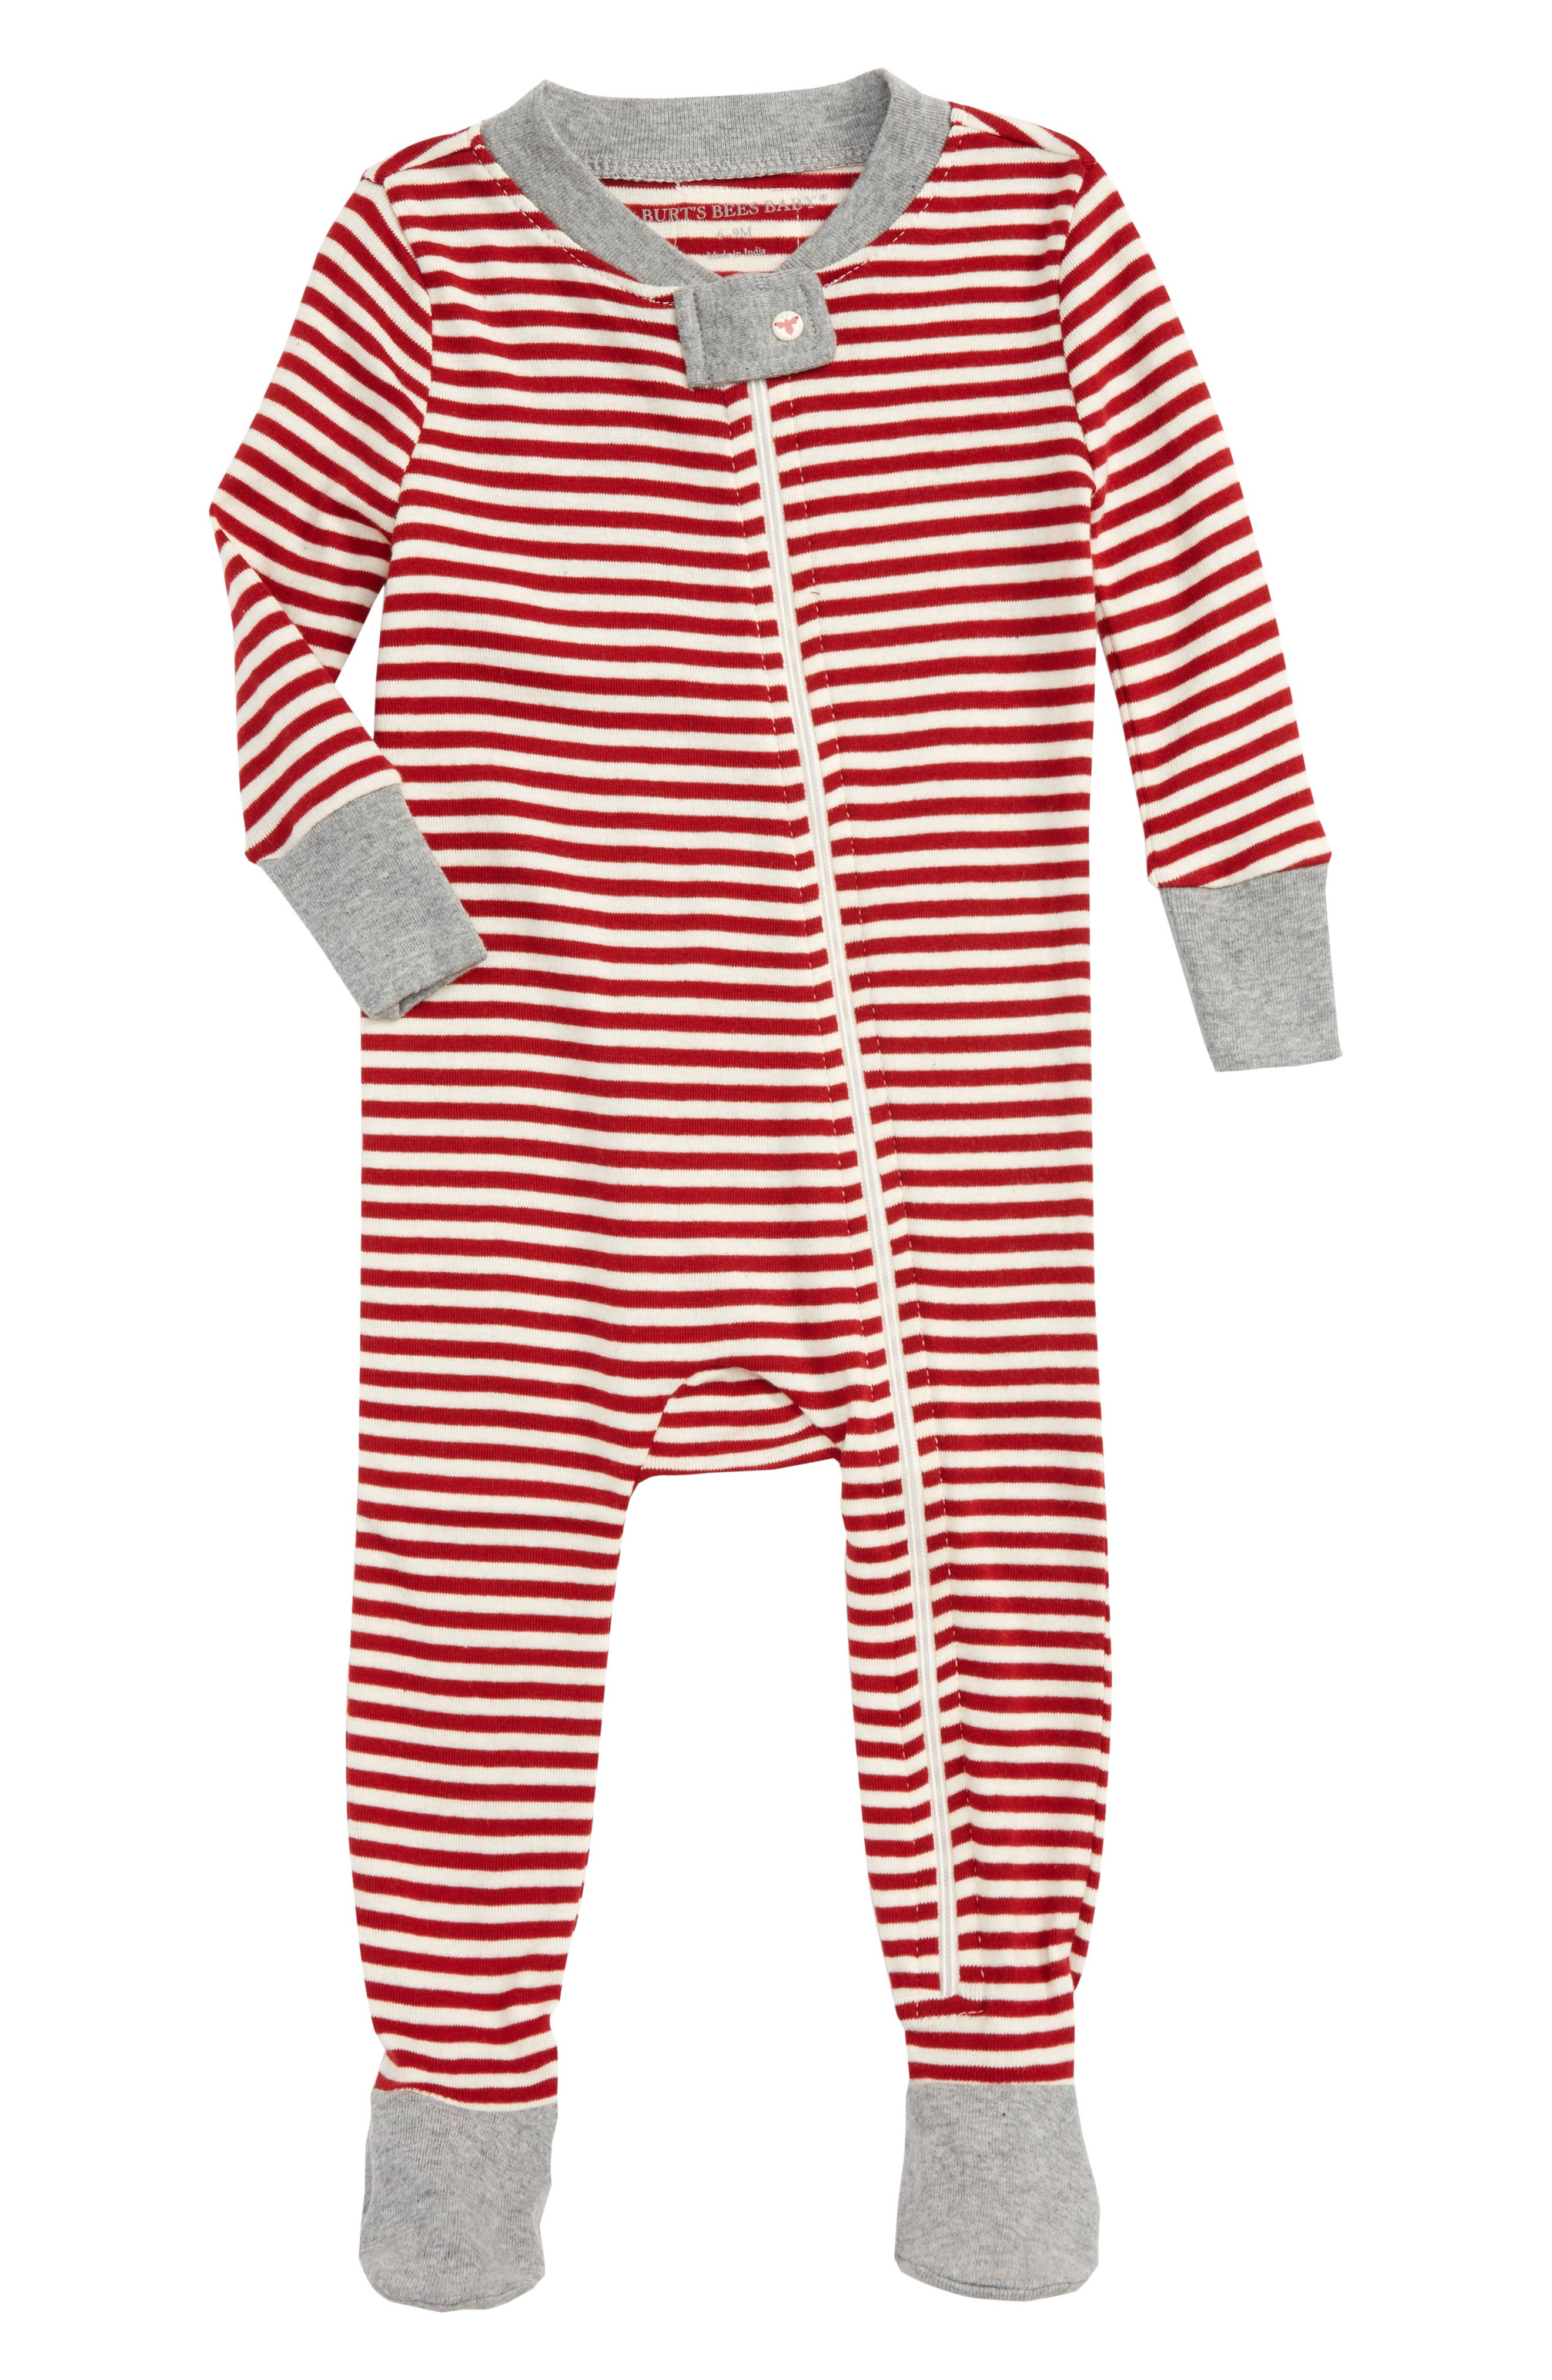 Fitted One-Piece Footie Pajamas,                         Main,                         color, 620